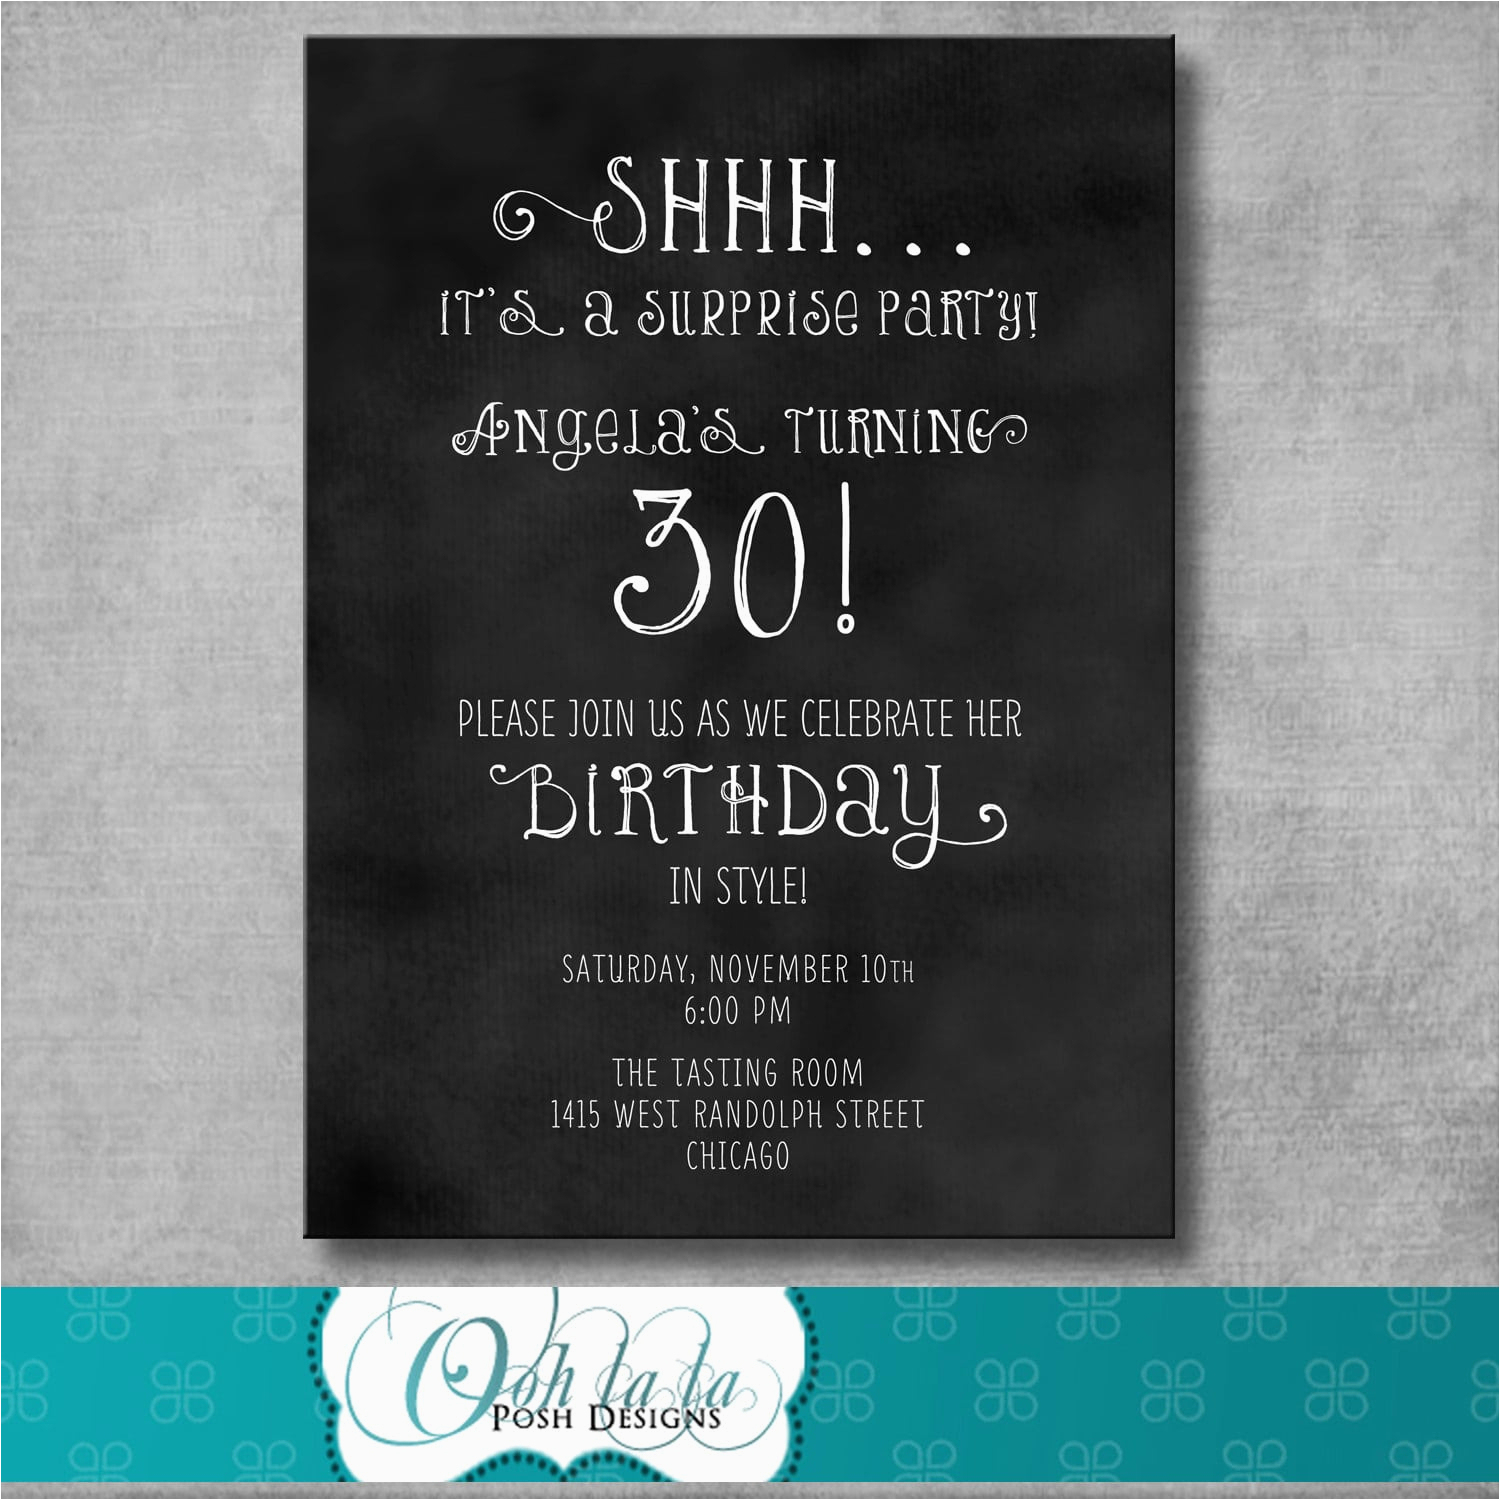 Free Surprise Birthday Party Invitations Free Printable Surprise - Free Printable Surprise Party Invitation Templates